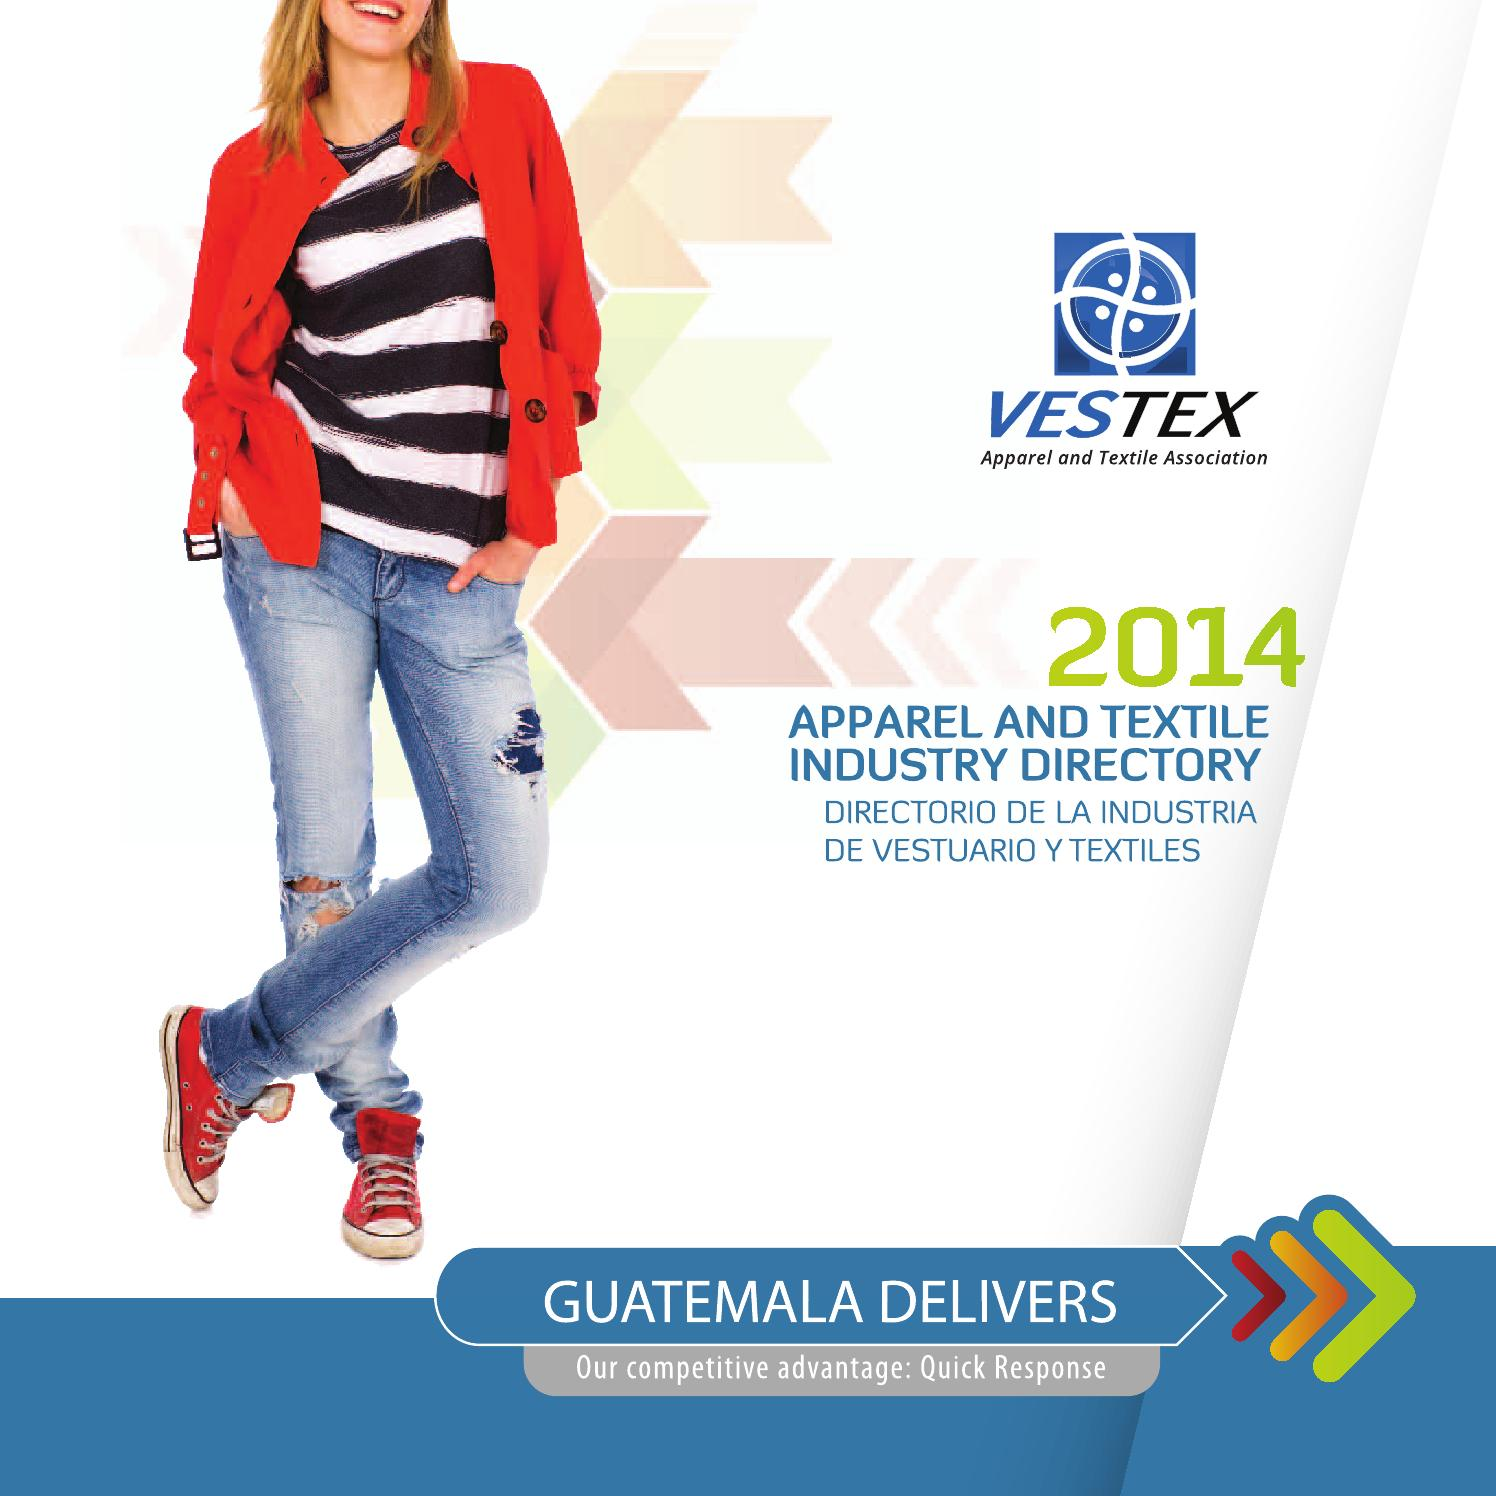 Apparel and textile industry directory 2014 by Maite Aguilar - issuu